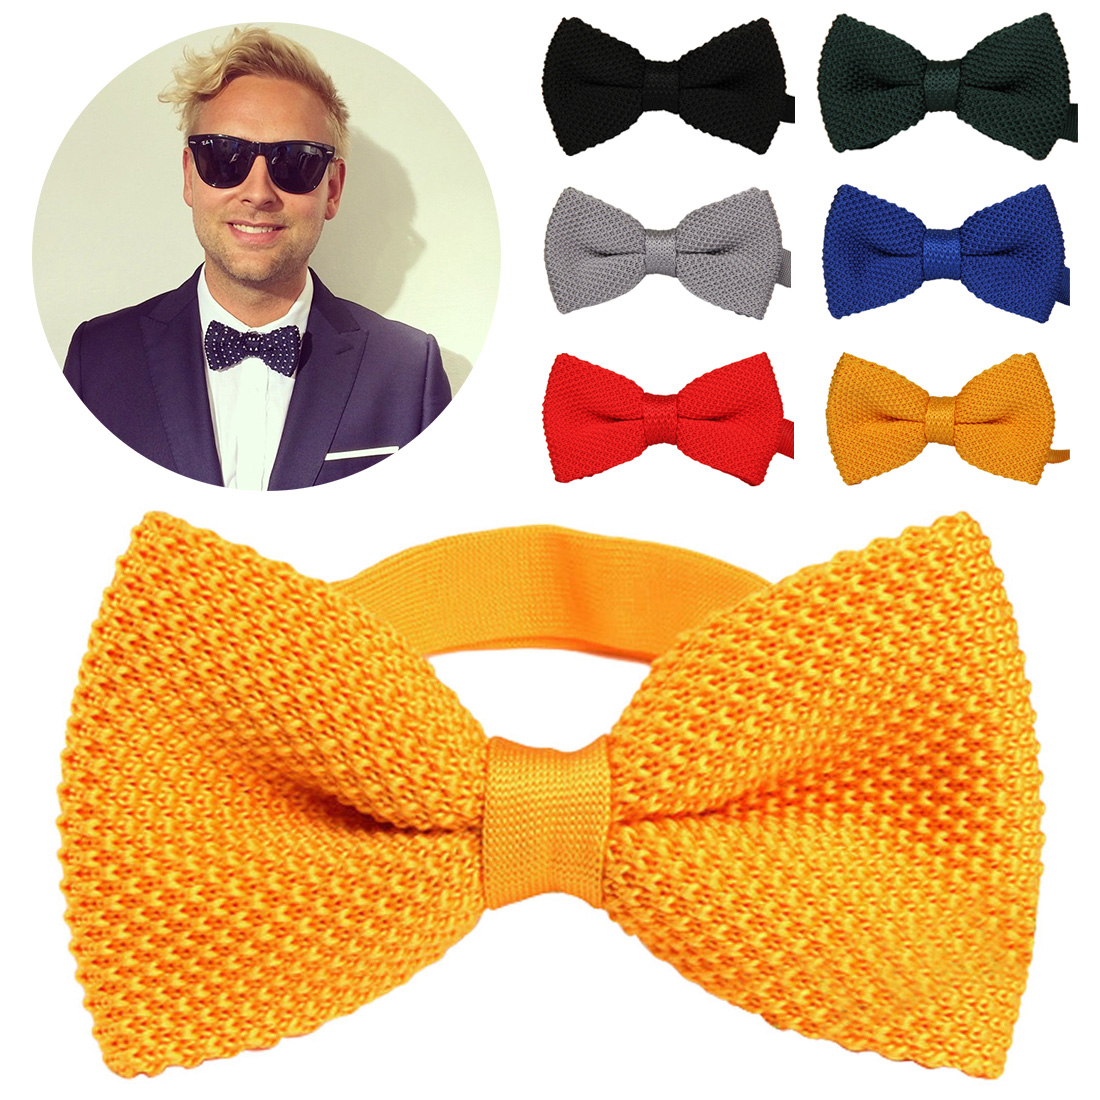 Men's Double Layer Solid Color Knit Bowtie Thick Pre Tied Adjustable Knitting Casual Ties Men Neck Ties Tuxedo Knitted Bowtie